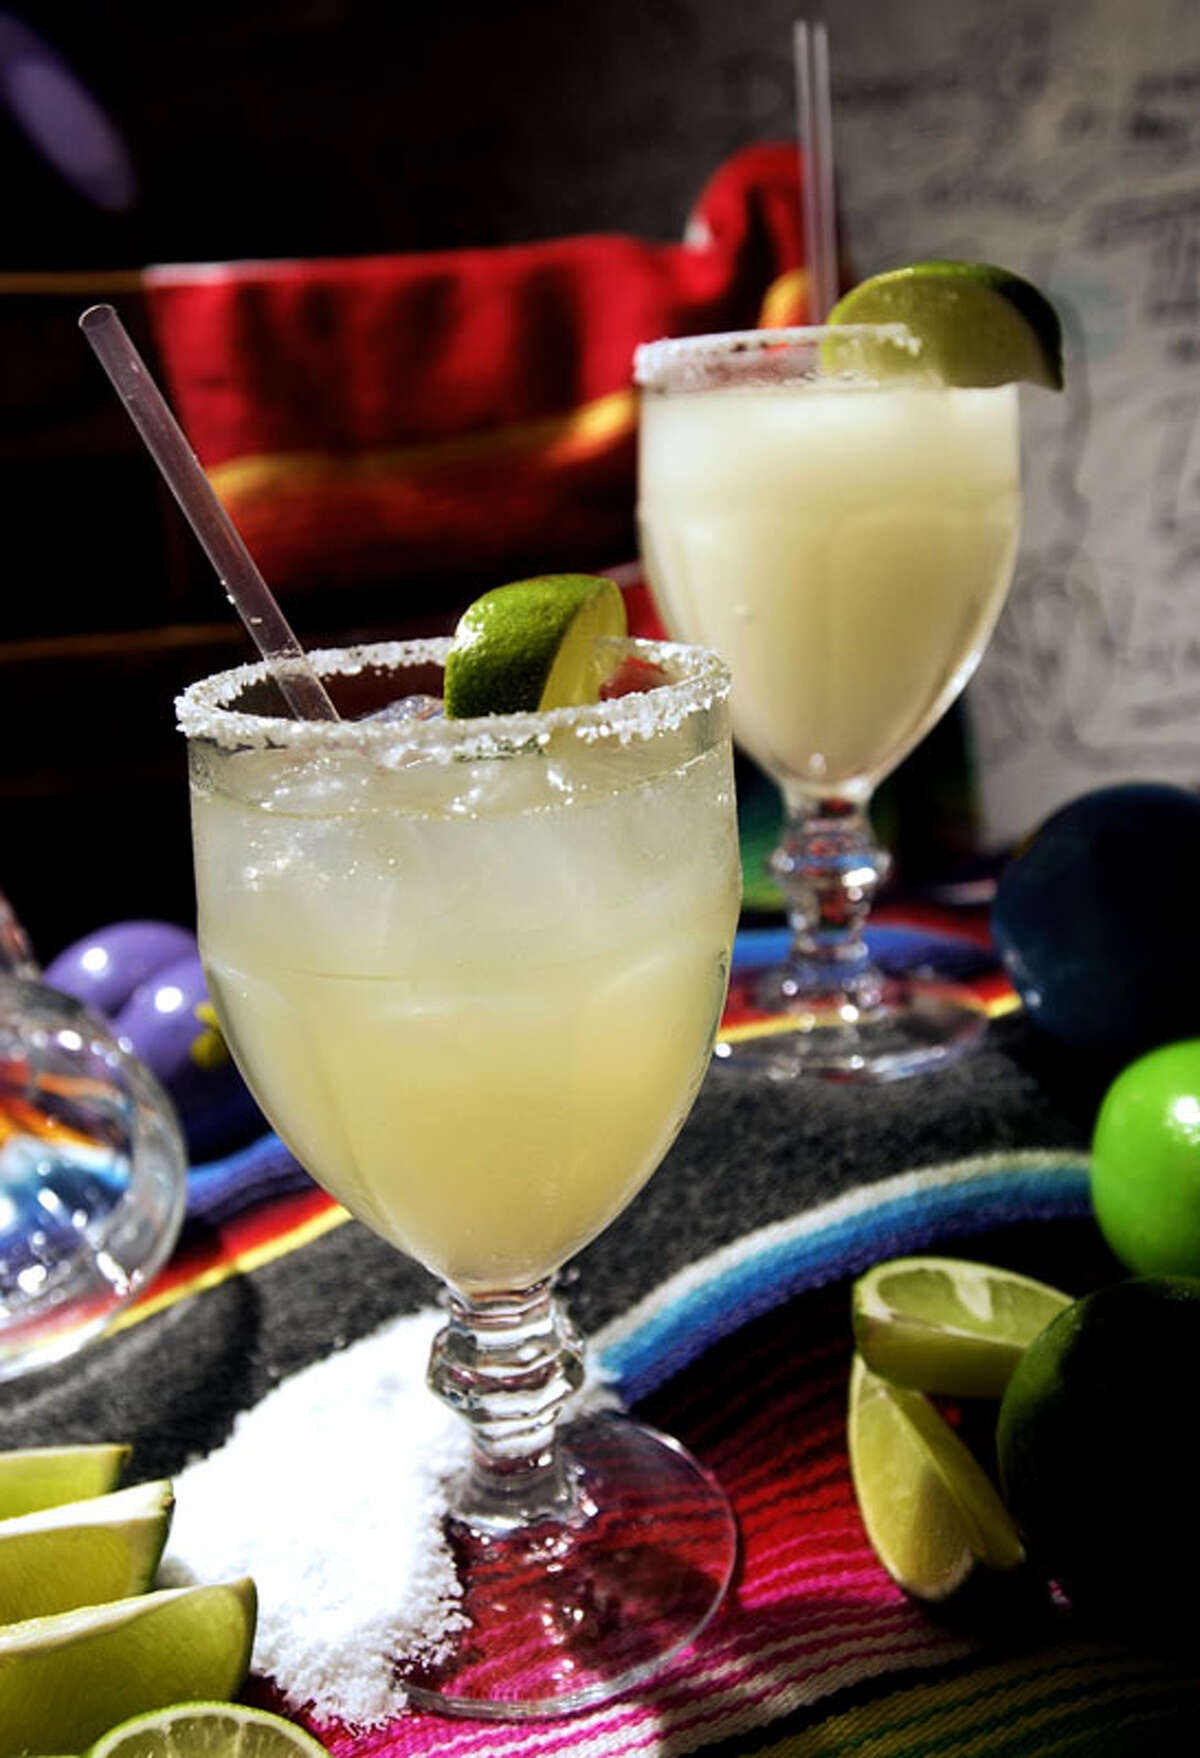 A DJ will spin tunes 5-10 p.m. at the original Cadillac Bar & Grill on Washington Avenue. In addition to fun giveaways, both cantinas will offer specials on margaritas, tequila shots and buckets of beer. 1802 Shepherd, 713-862-2020; Kemah Board, 281-334-9049; cadillacbar.com